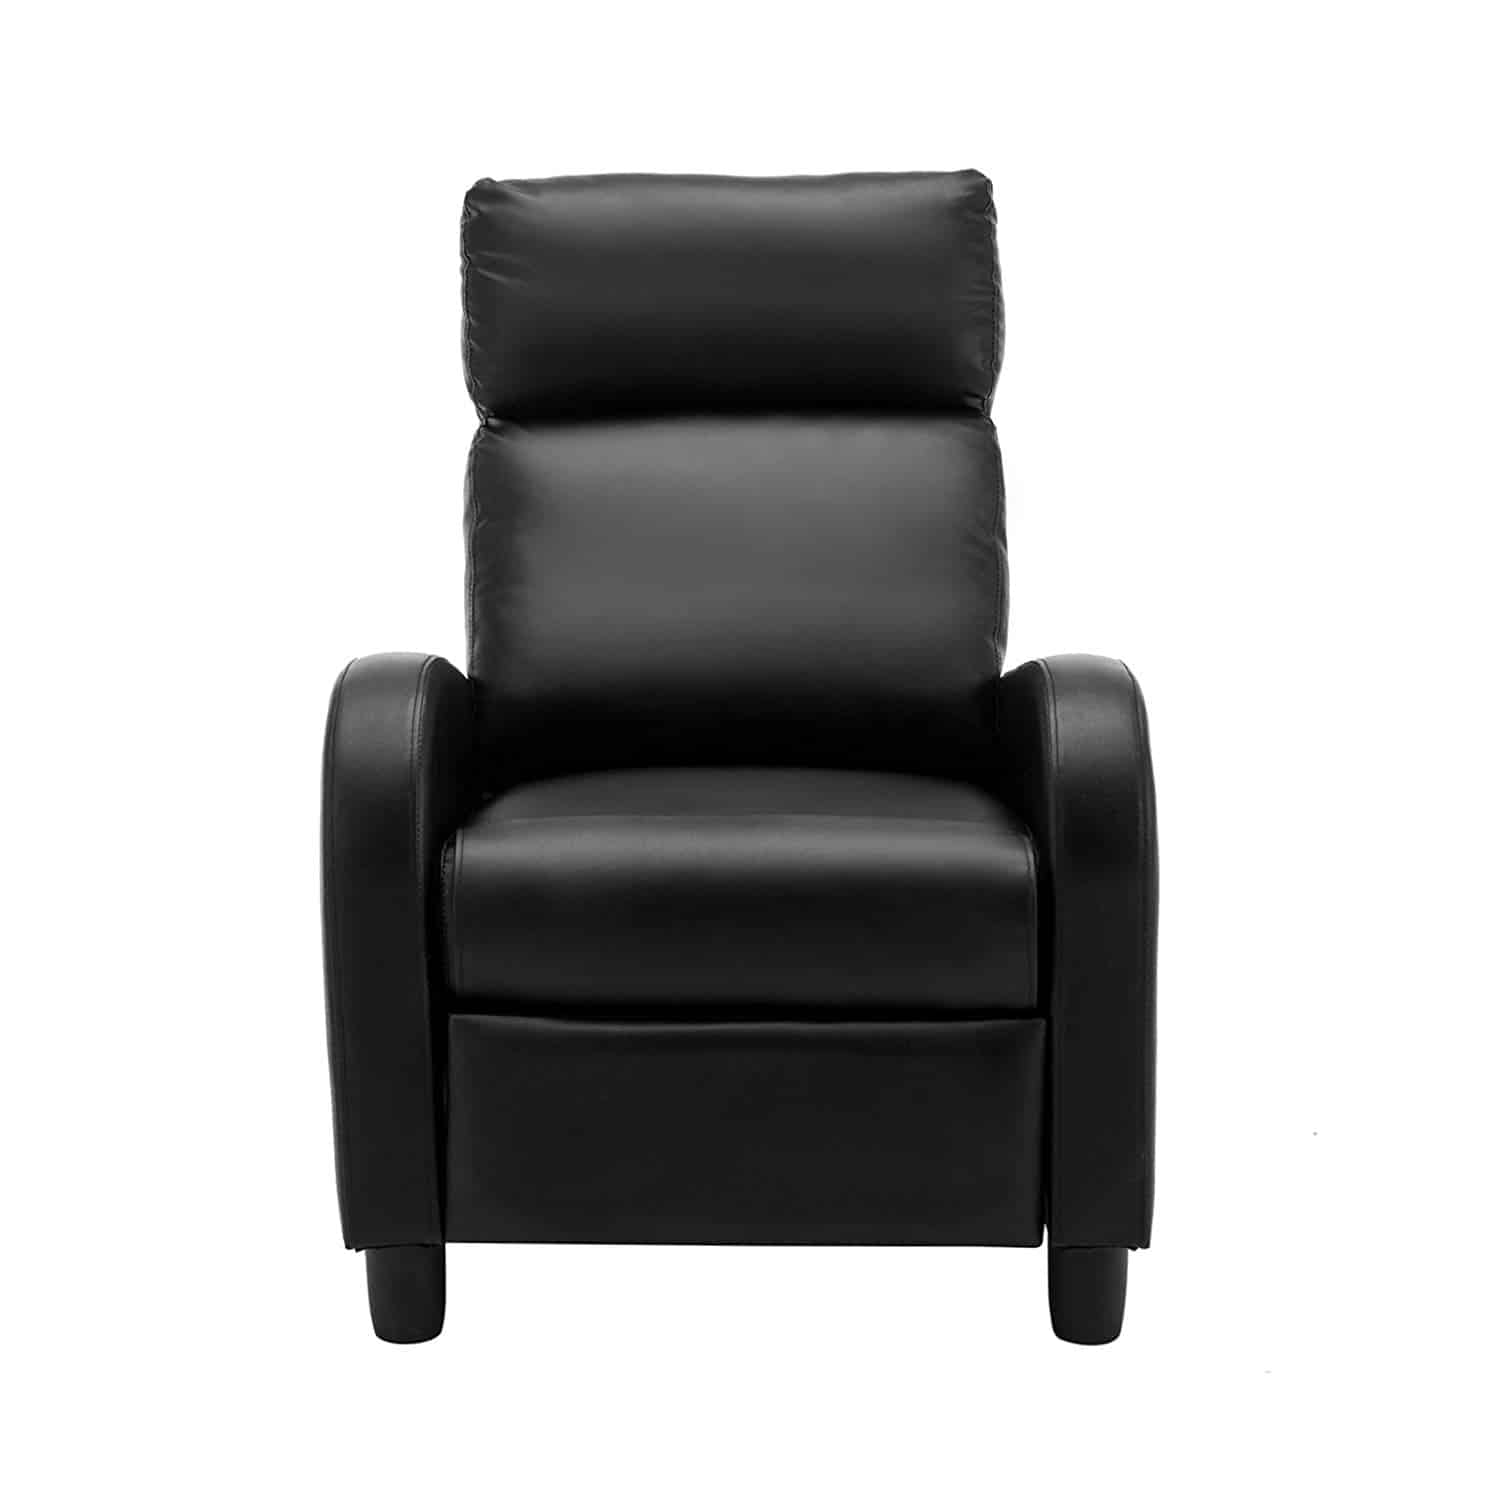 SUNCOO Manual Leisure Recliner Chair